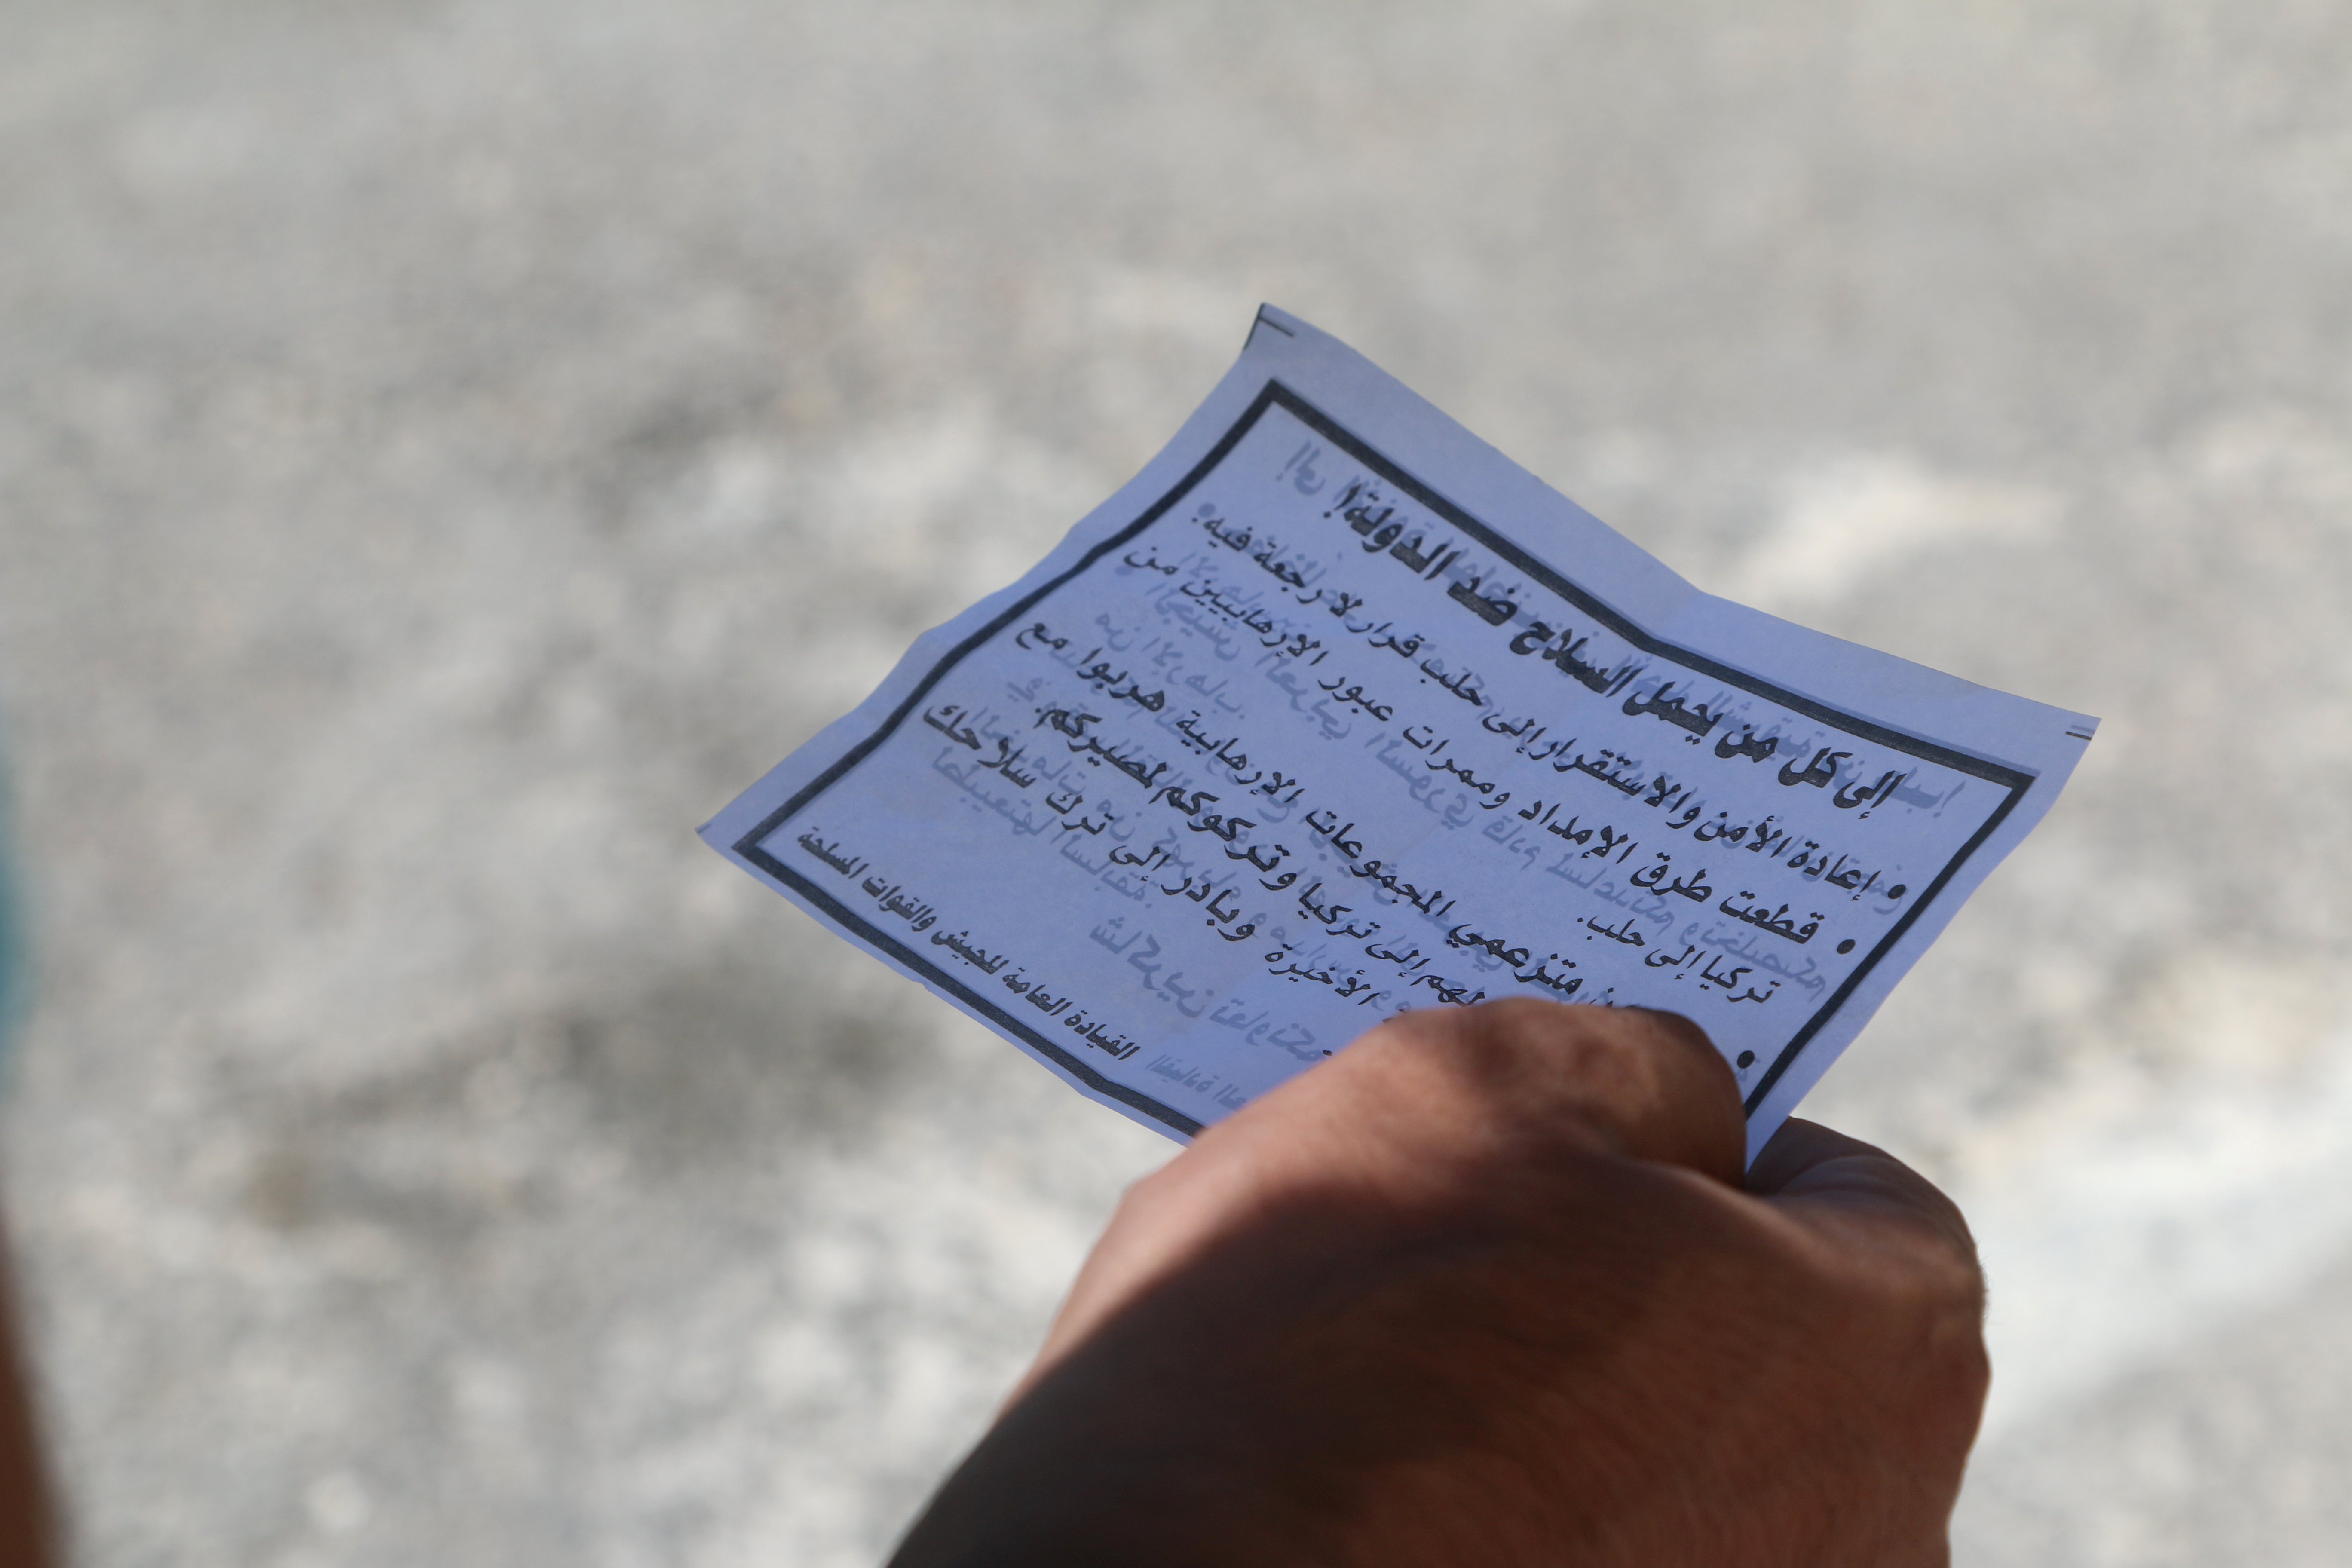 A man holds one of the leaflets dropped by the Syrian army over opposition-held Aleppo districts asking residents to cooperate with the military and calling on fighters to surrender, July 28, 2016.